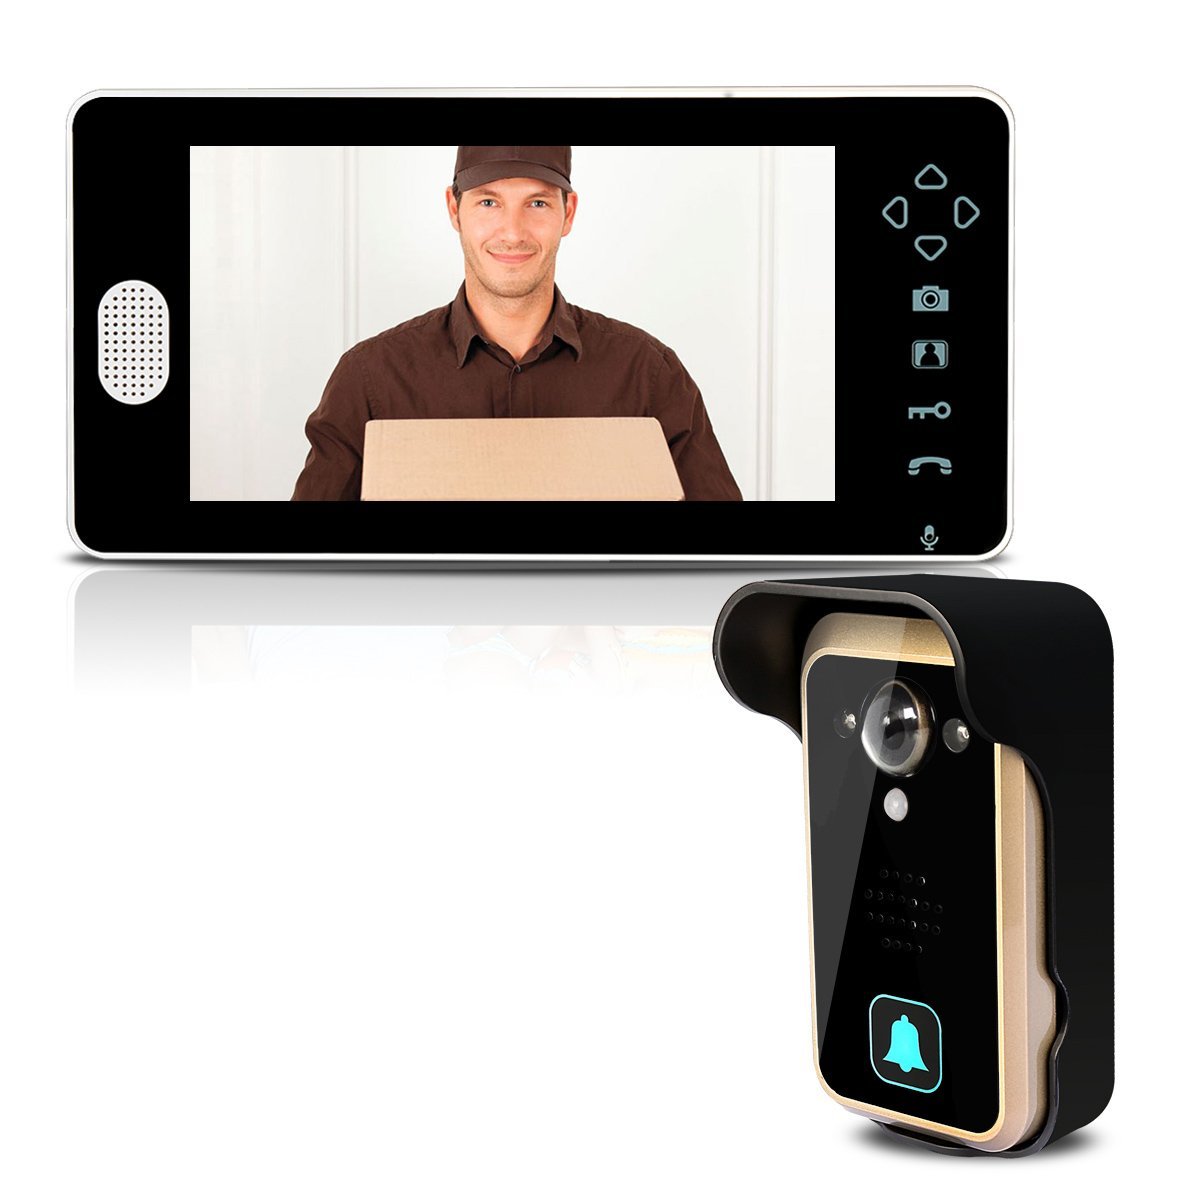 TIVDIO Wireless Door Phone Wireless Video Doorbell Wireless Video Door Intercom with 7 Inch Colorful LCD Monitor with 120 Degrees Wide Angle Clear Night Vision and IP55 Waterproof Outdoor Camera